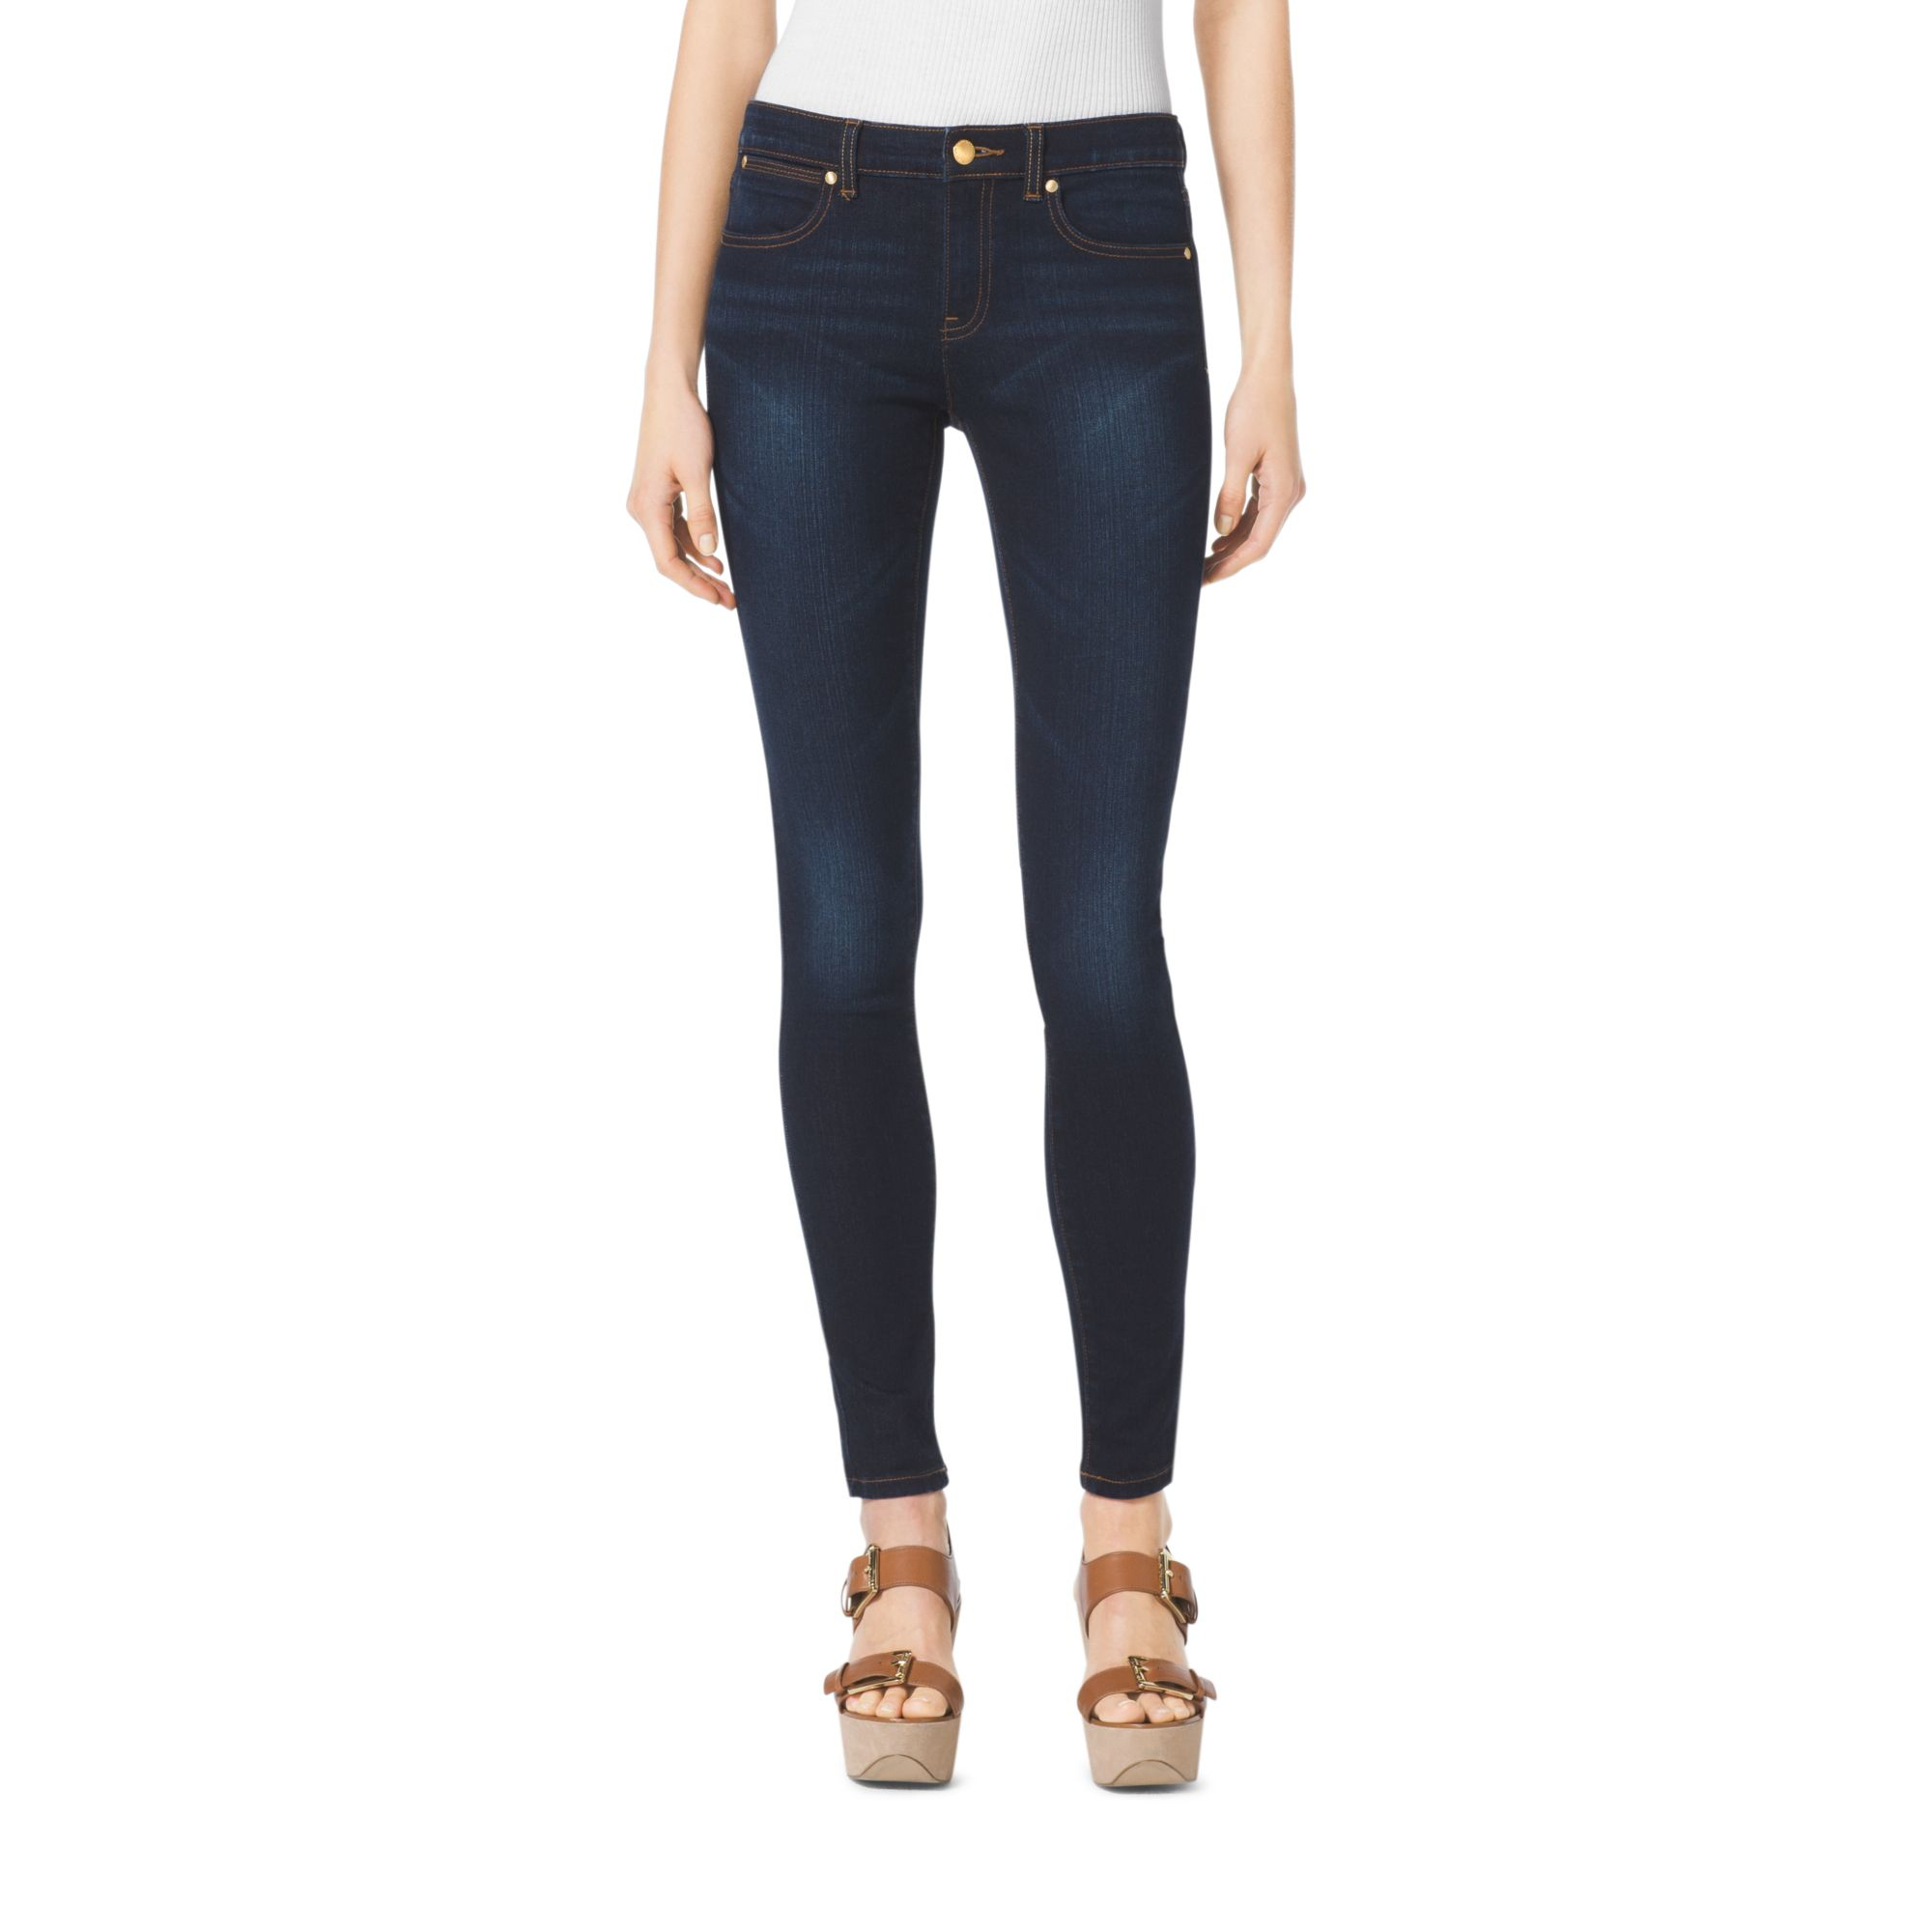 michael kors high waisted skinny jeans in blue lyst. Black Bedroom Furniture Sets. Home Design Ideas